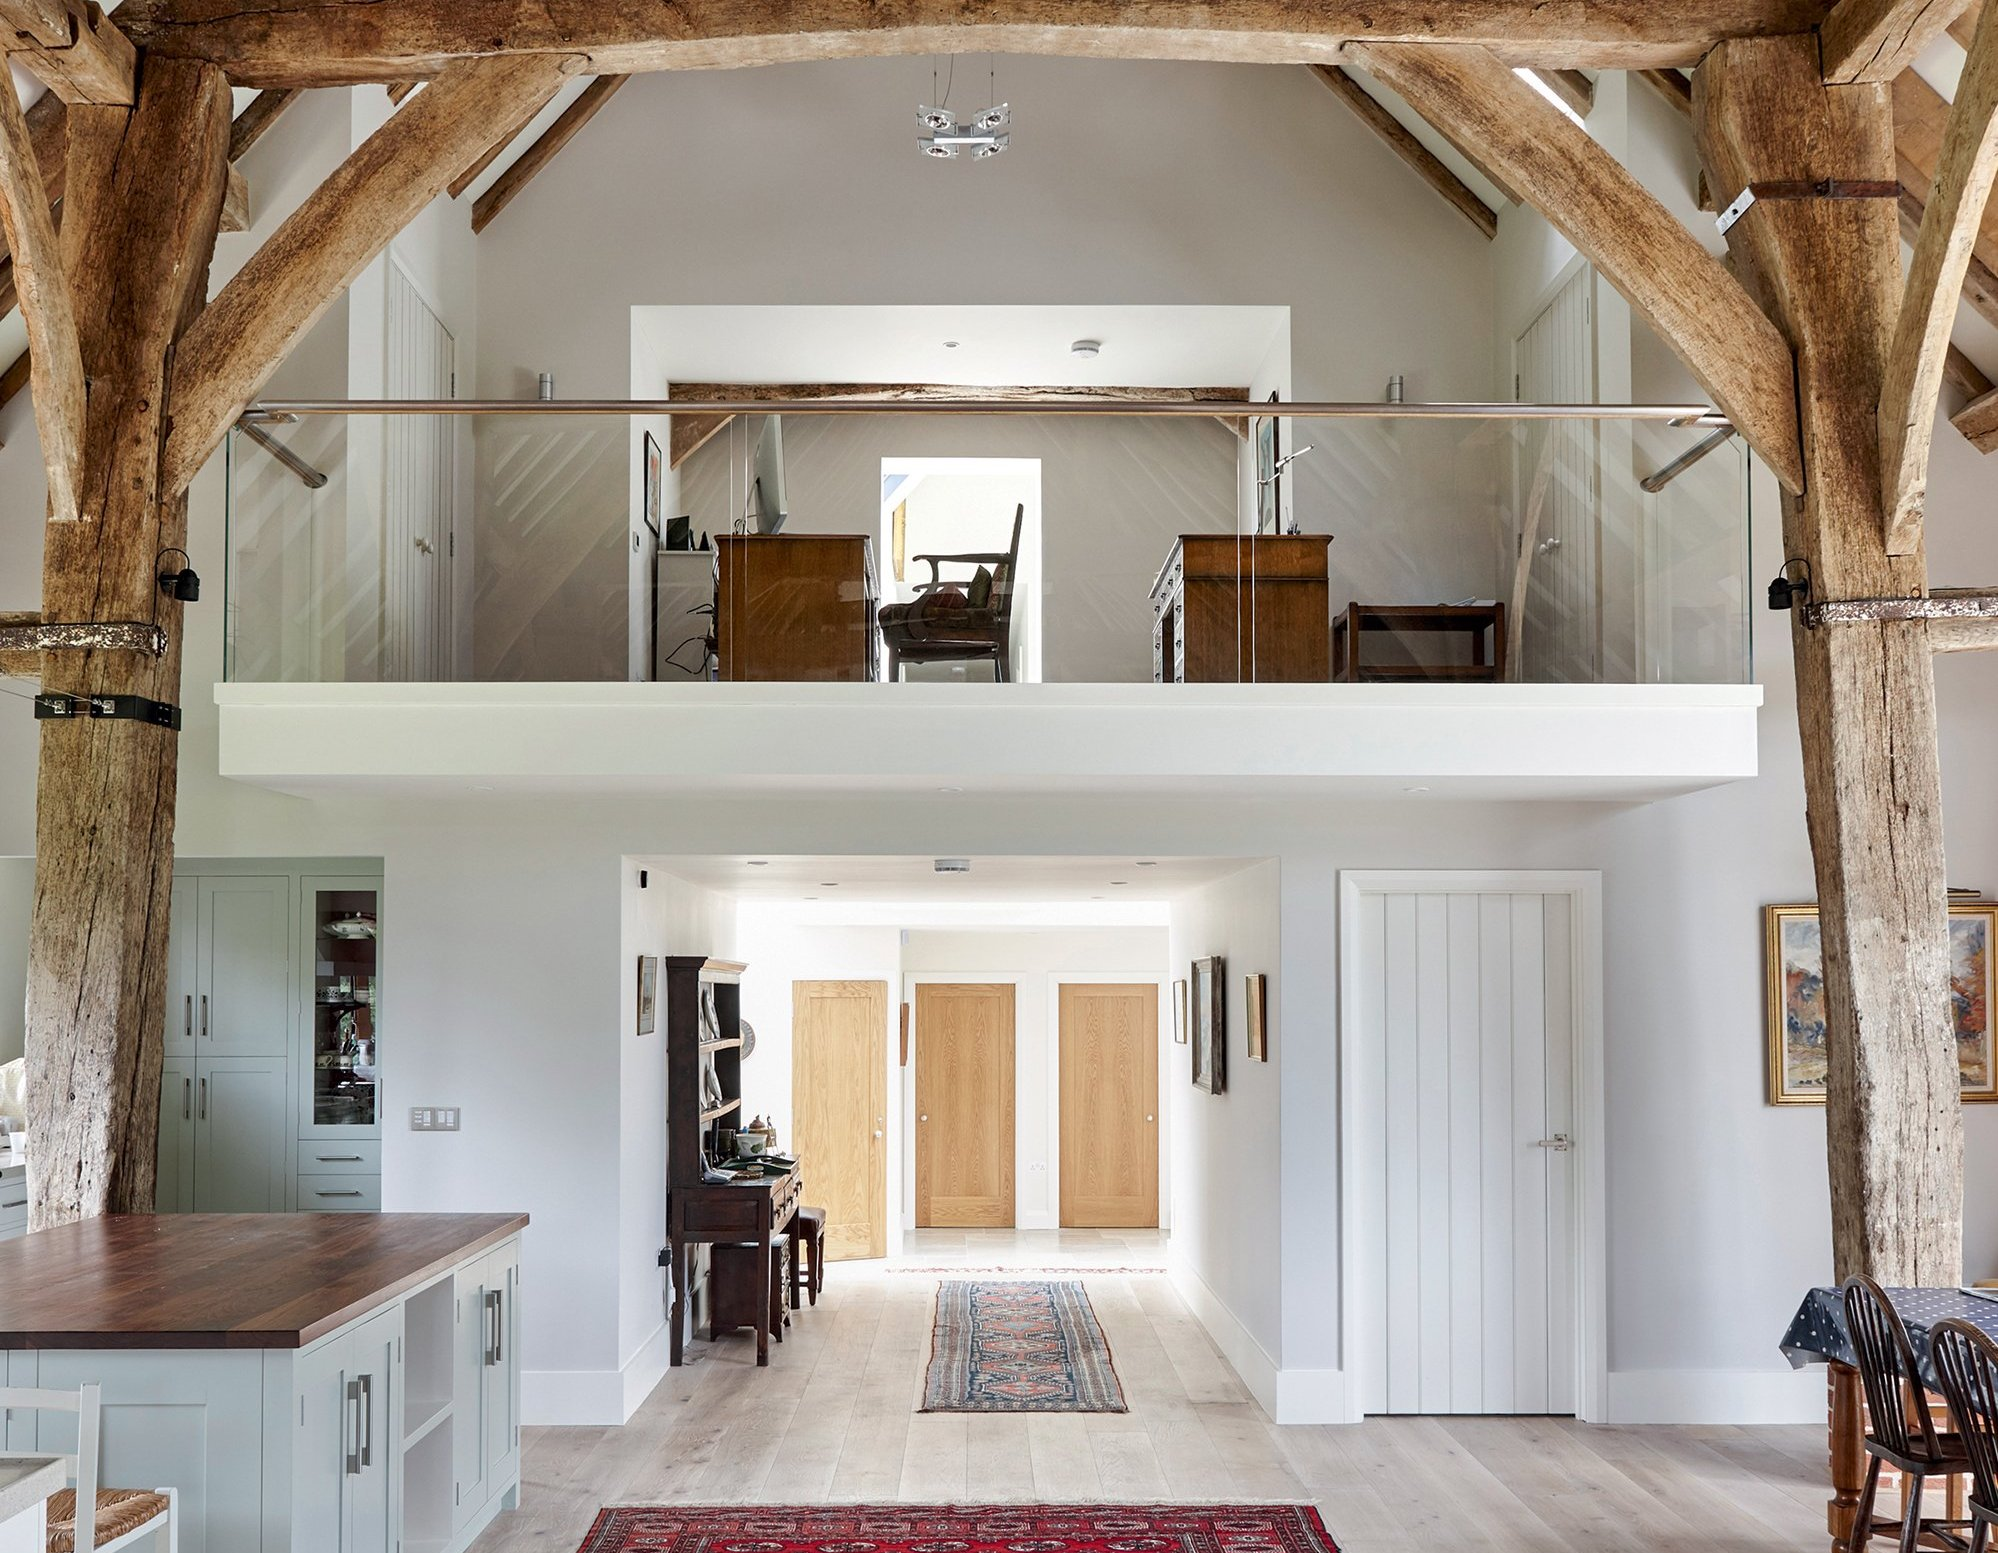 Mezzanine Design Ideas for Your Home - Build It